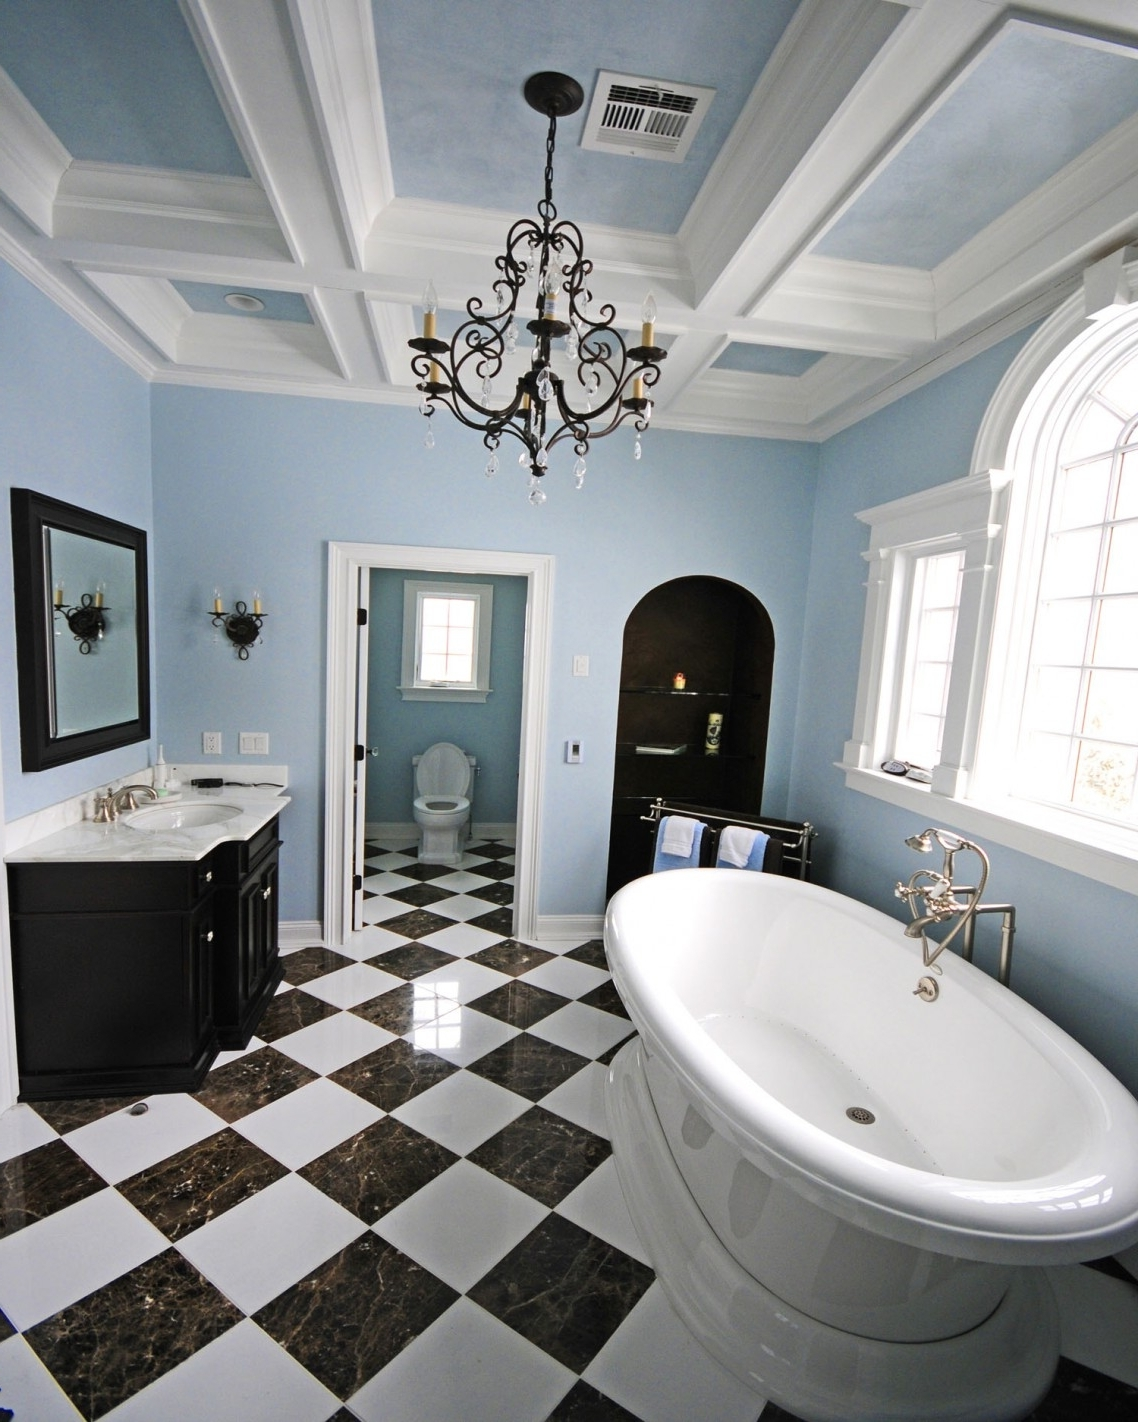 Fashionable Bathroom Chandeliers In Bathroom Ideas: Bathroom Chandeliers With Black And White Tiles (View 7 of 15)